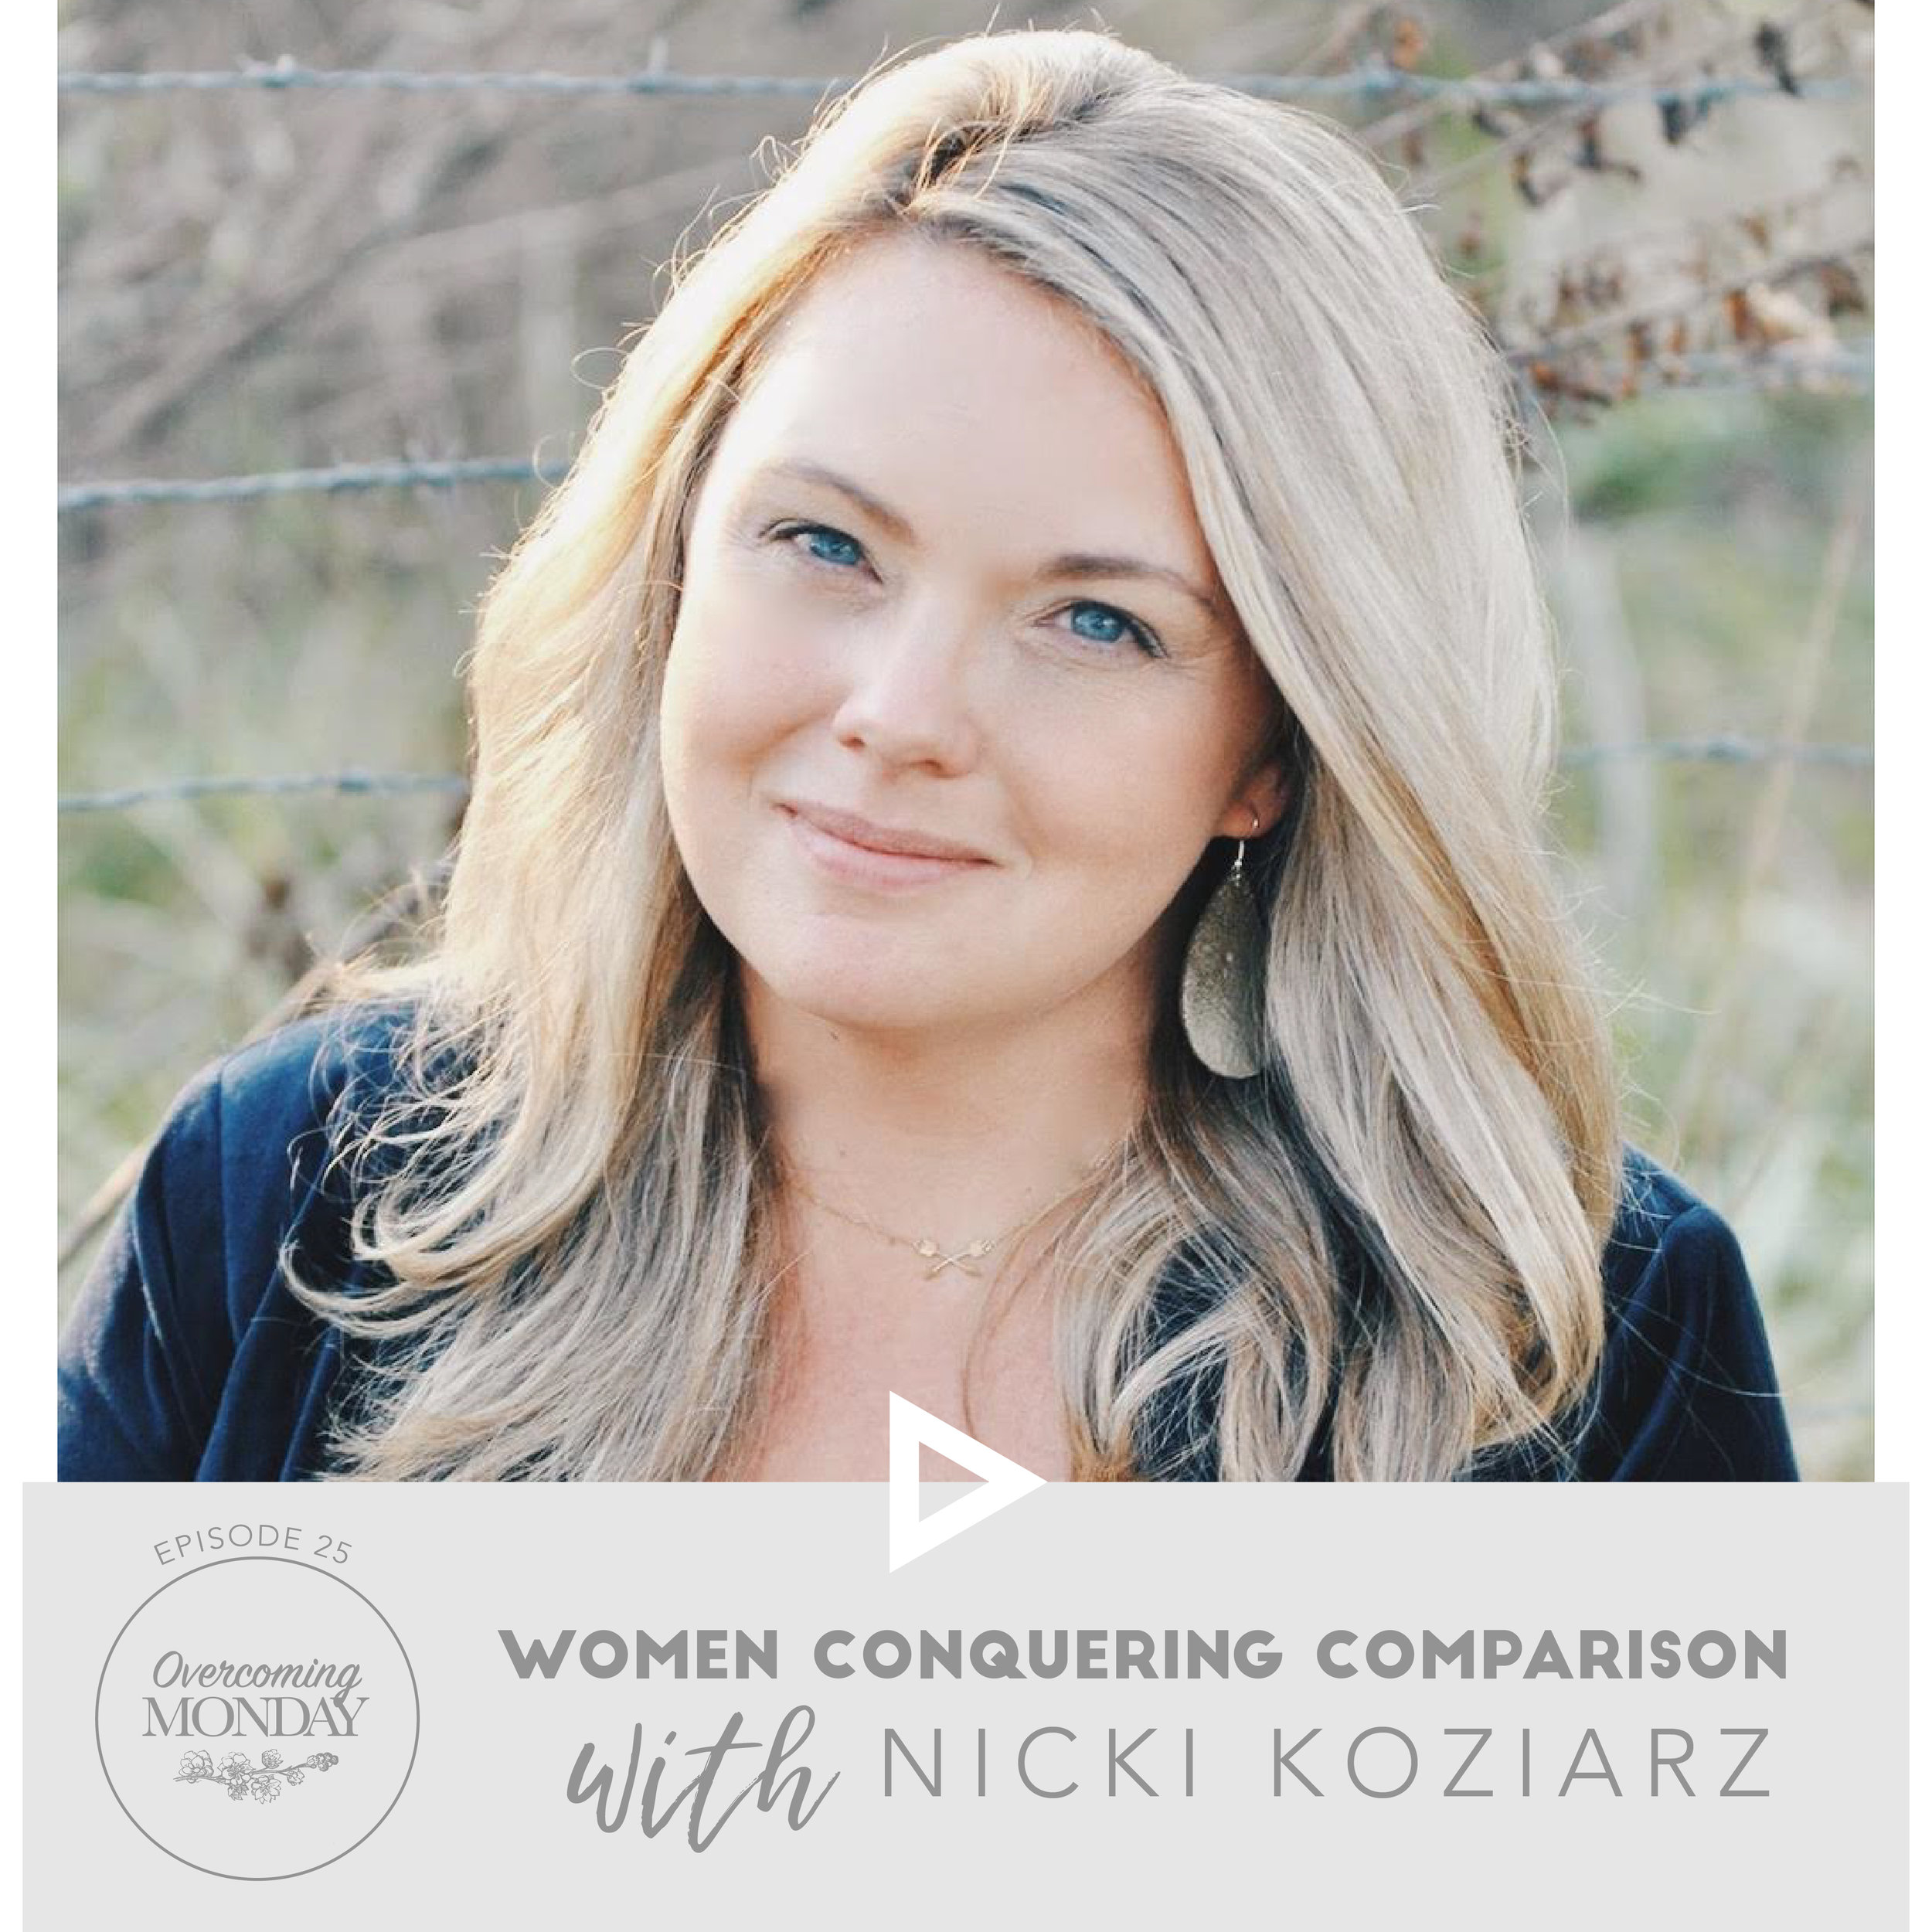 Giveaway - This week, I am giving you a chance to win Nicki's book, Why Her (and there may be other goodies included- just sayin'). All you have to do is subscribe to my blog, and then leave a comment below on the biggest way you fight comparison in your life.